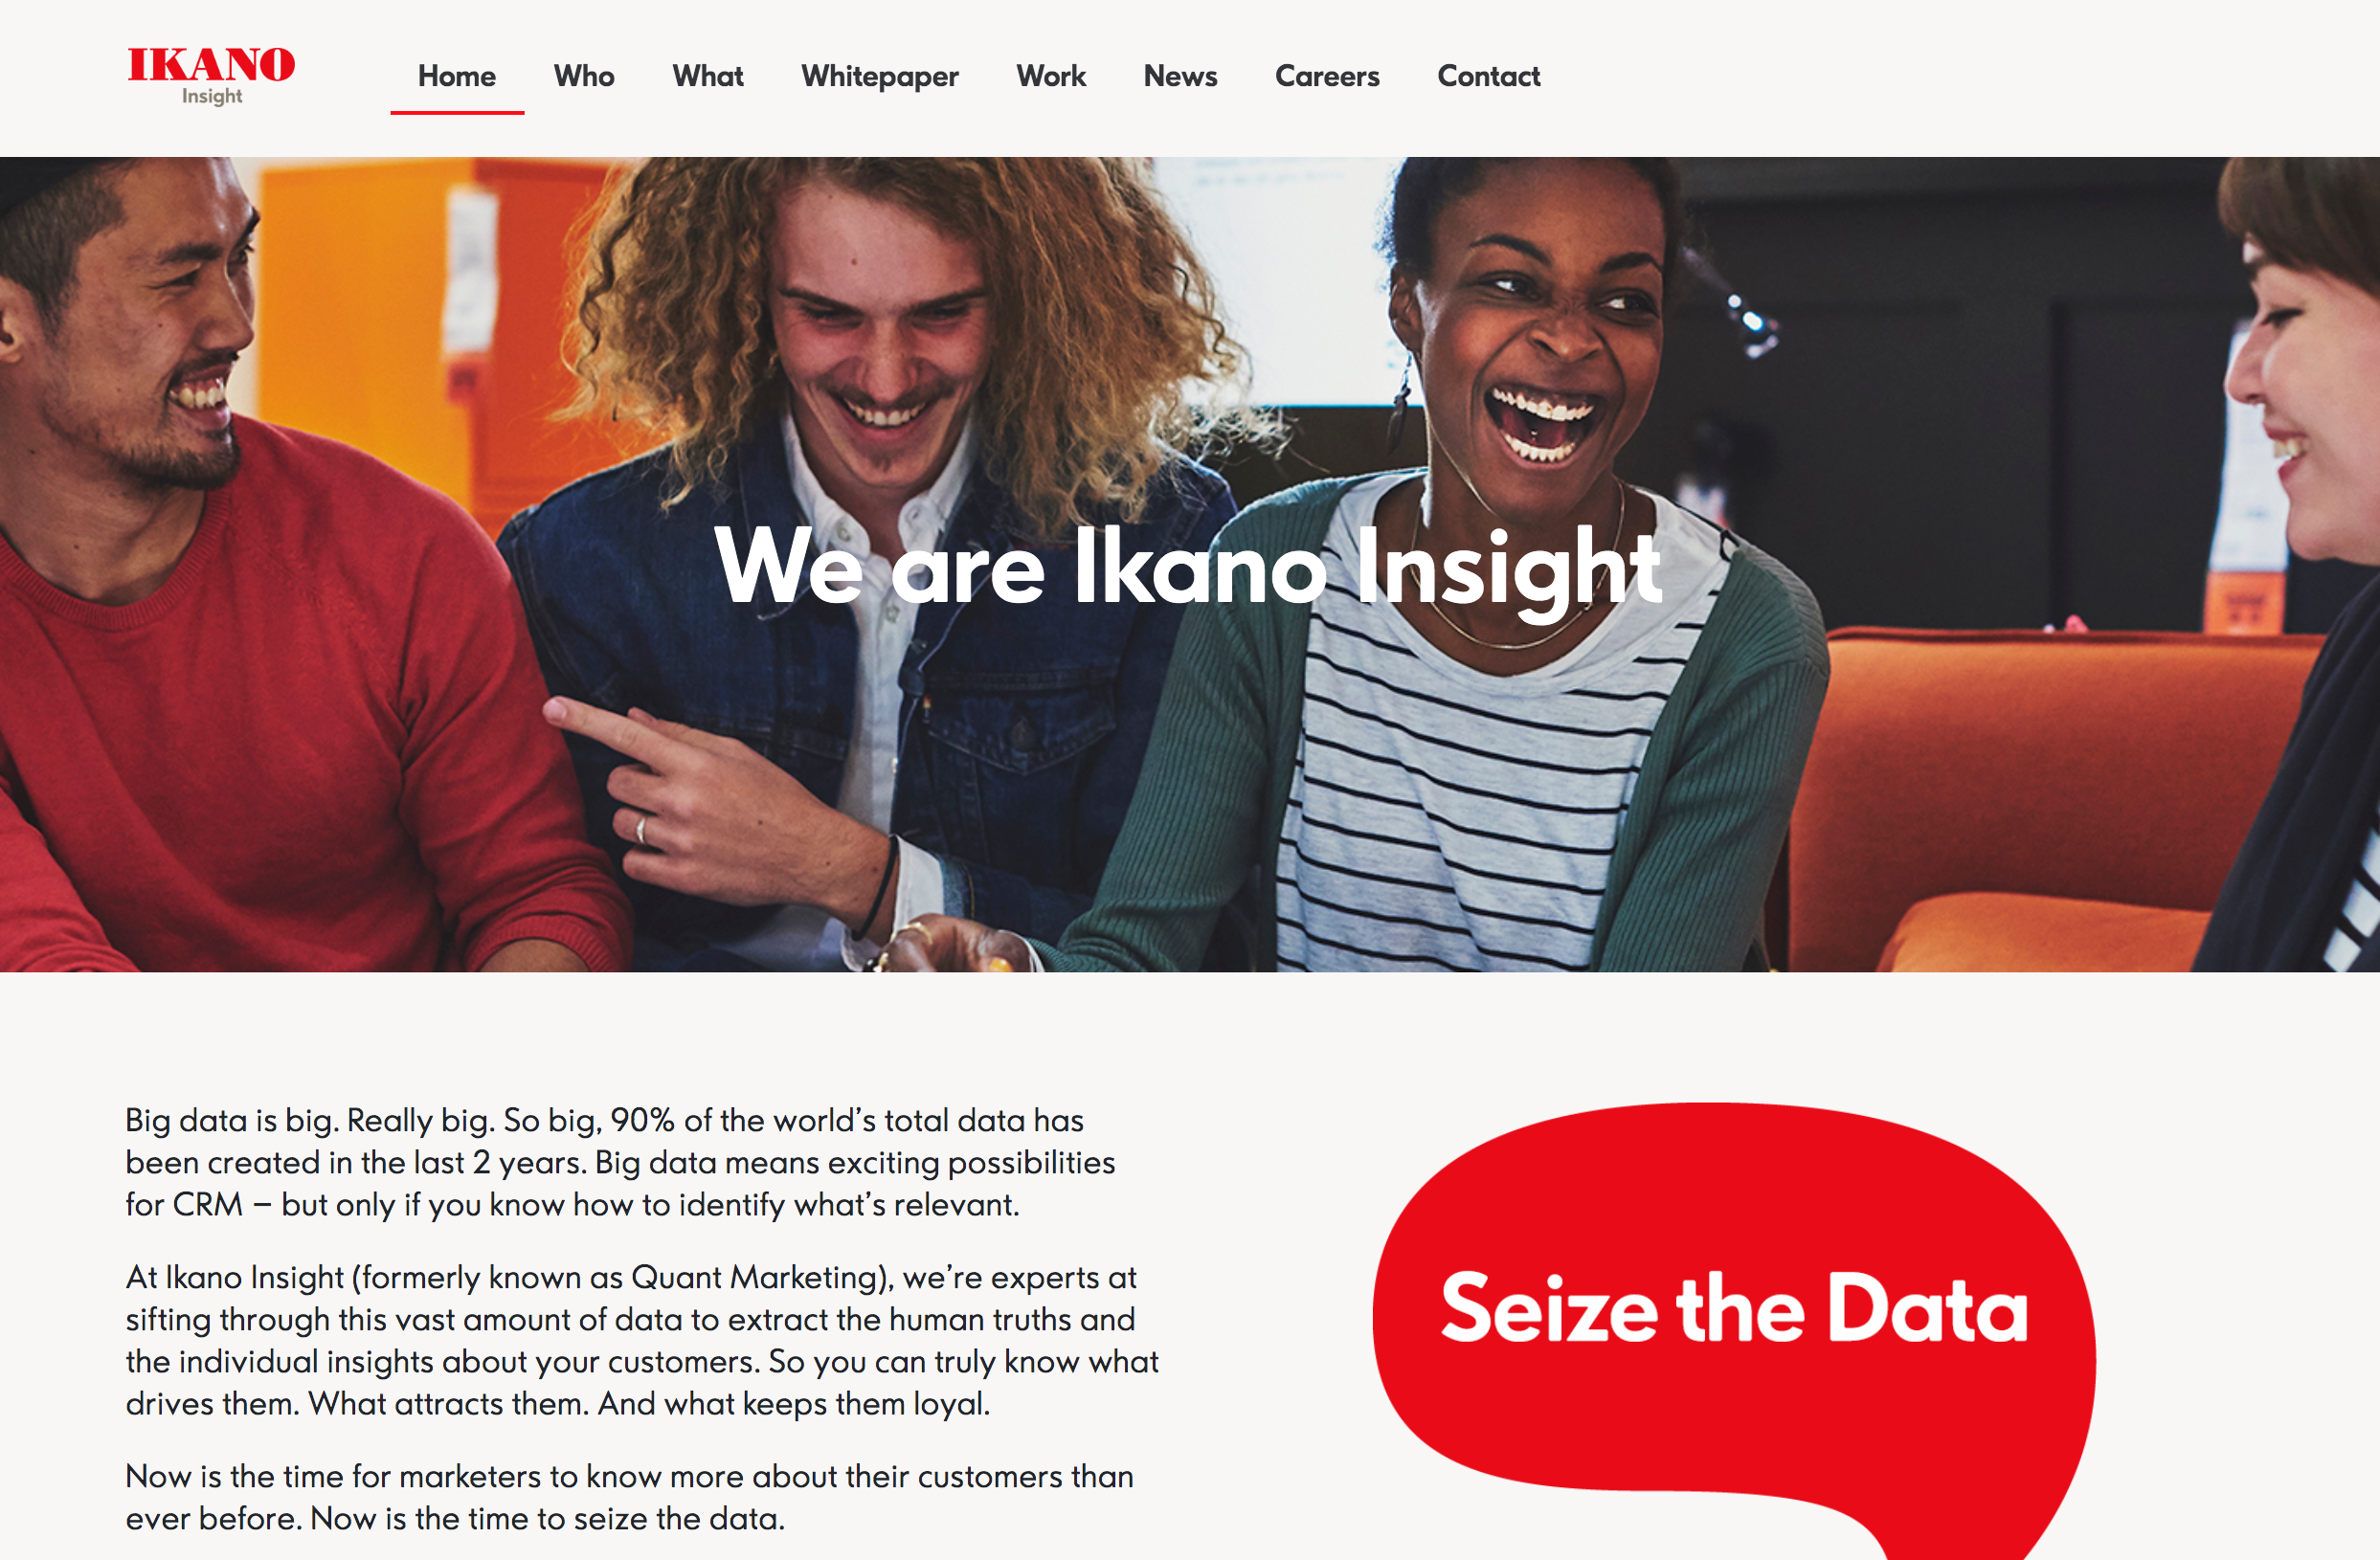 The British data and analystics agency launches their microsite